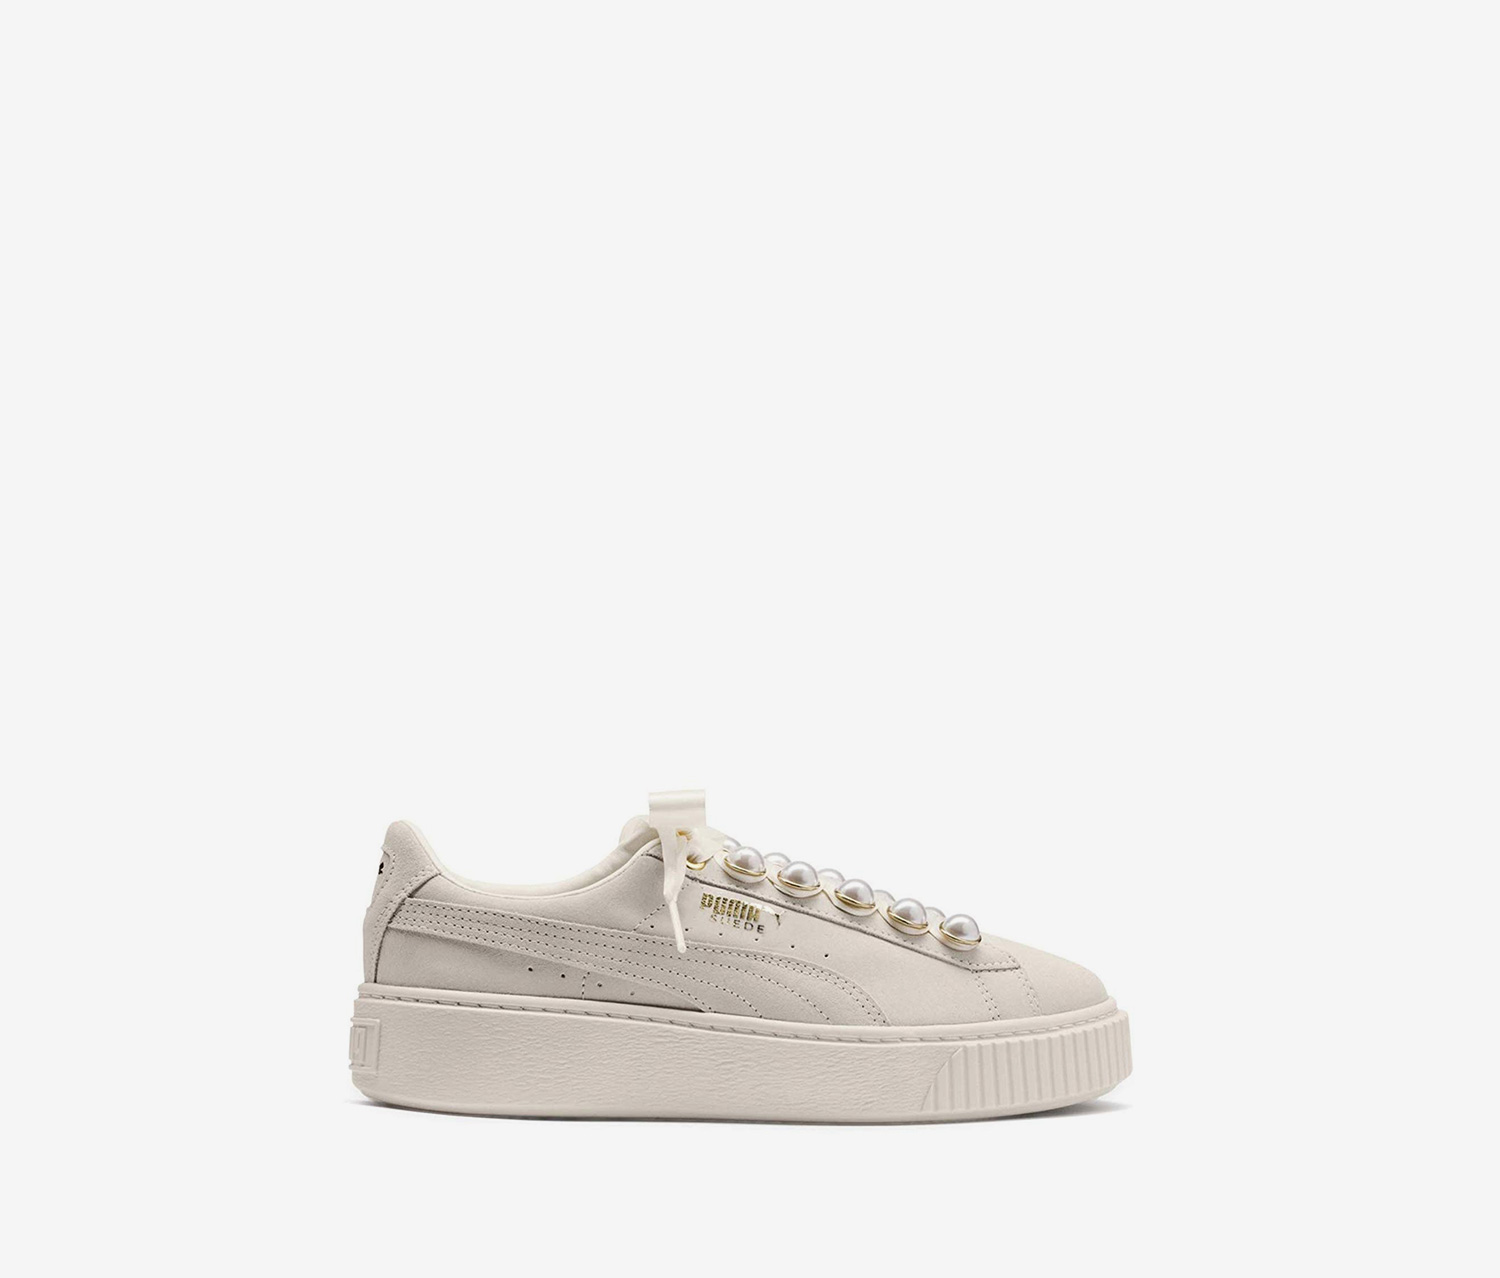 Shop Puma Women's Suede Platform Bling Sneakers, Natural